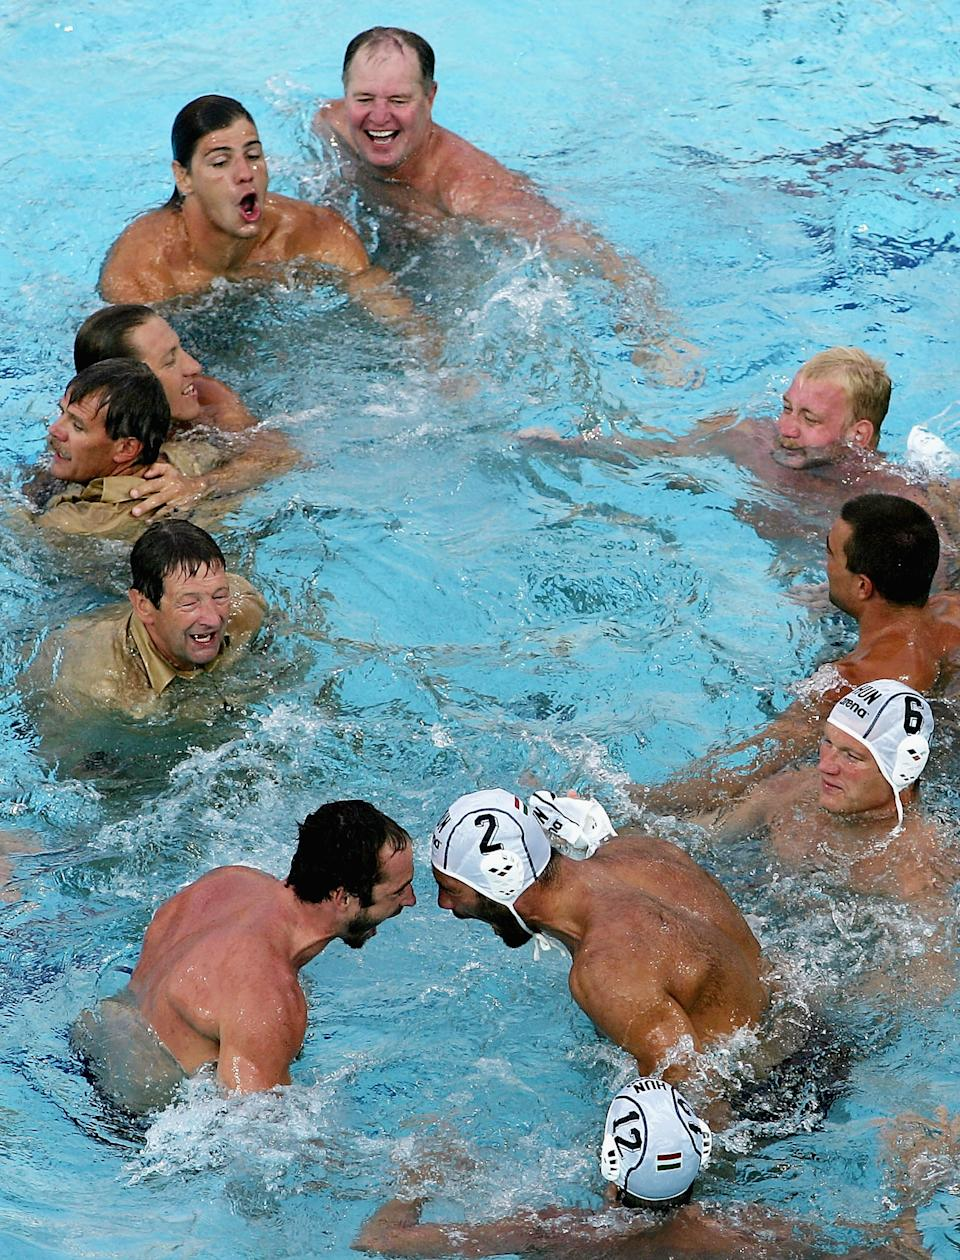 ATHENS - AUGUST 29: The Hungarian team celebrate afer winning the gold medal in the men's Water Polo gold medal game against Serbia Montenegro on August 29, 2004 during the Athens 2004 Summer Olympic Games at the Main Pool of the Olympic Sports Complex Aquatic Centre in Athens, Greece. (Photo by Daniel Berehulak/Getty Images for FINA)